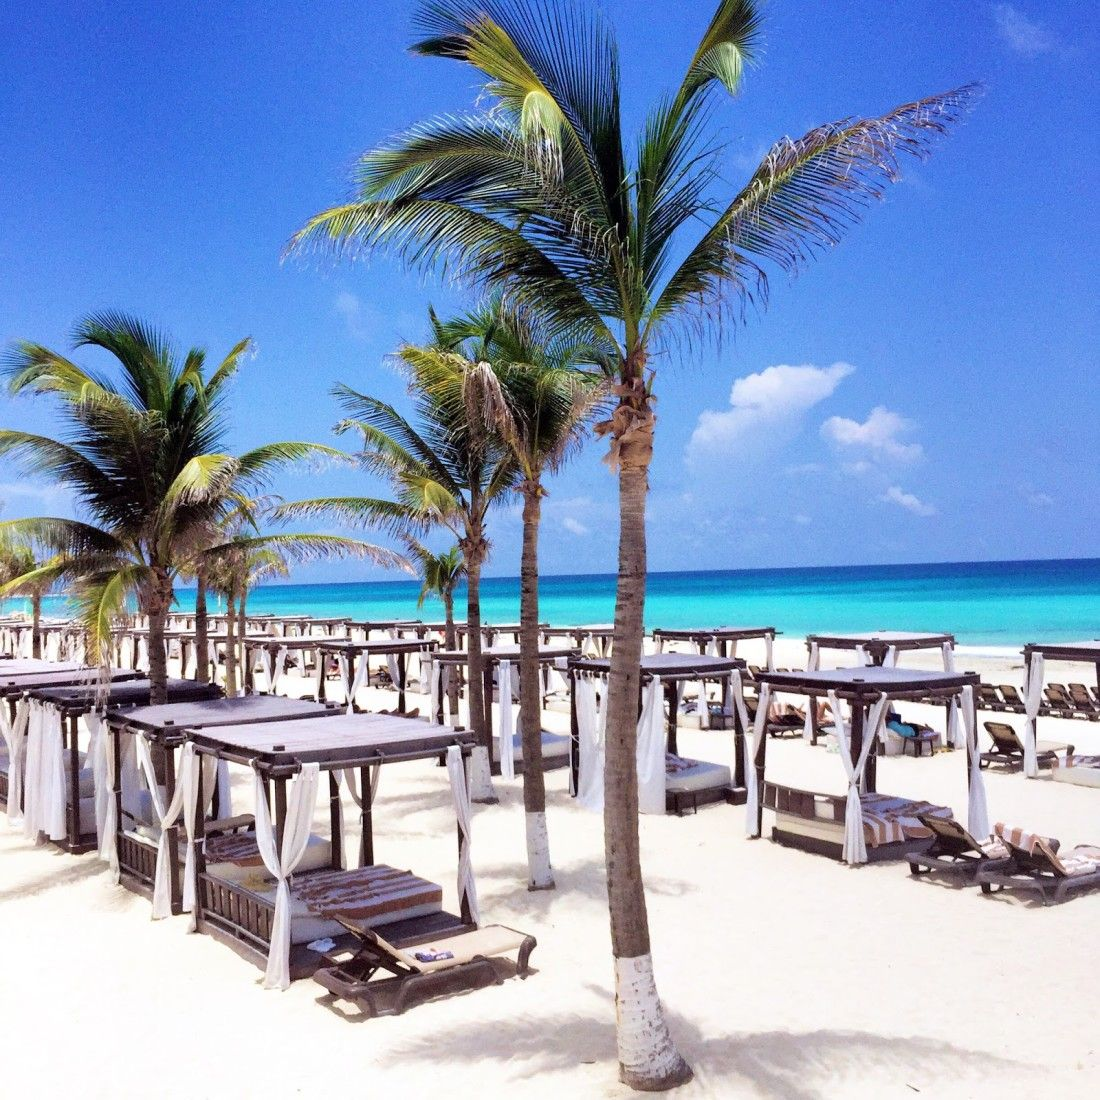 5 Things to Know about an AllInclusive Resort Our Cancun